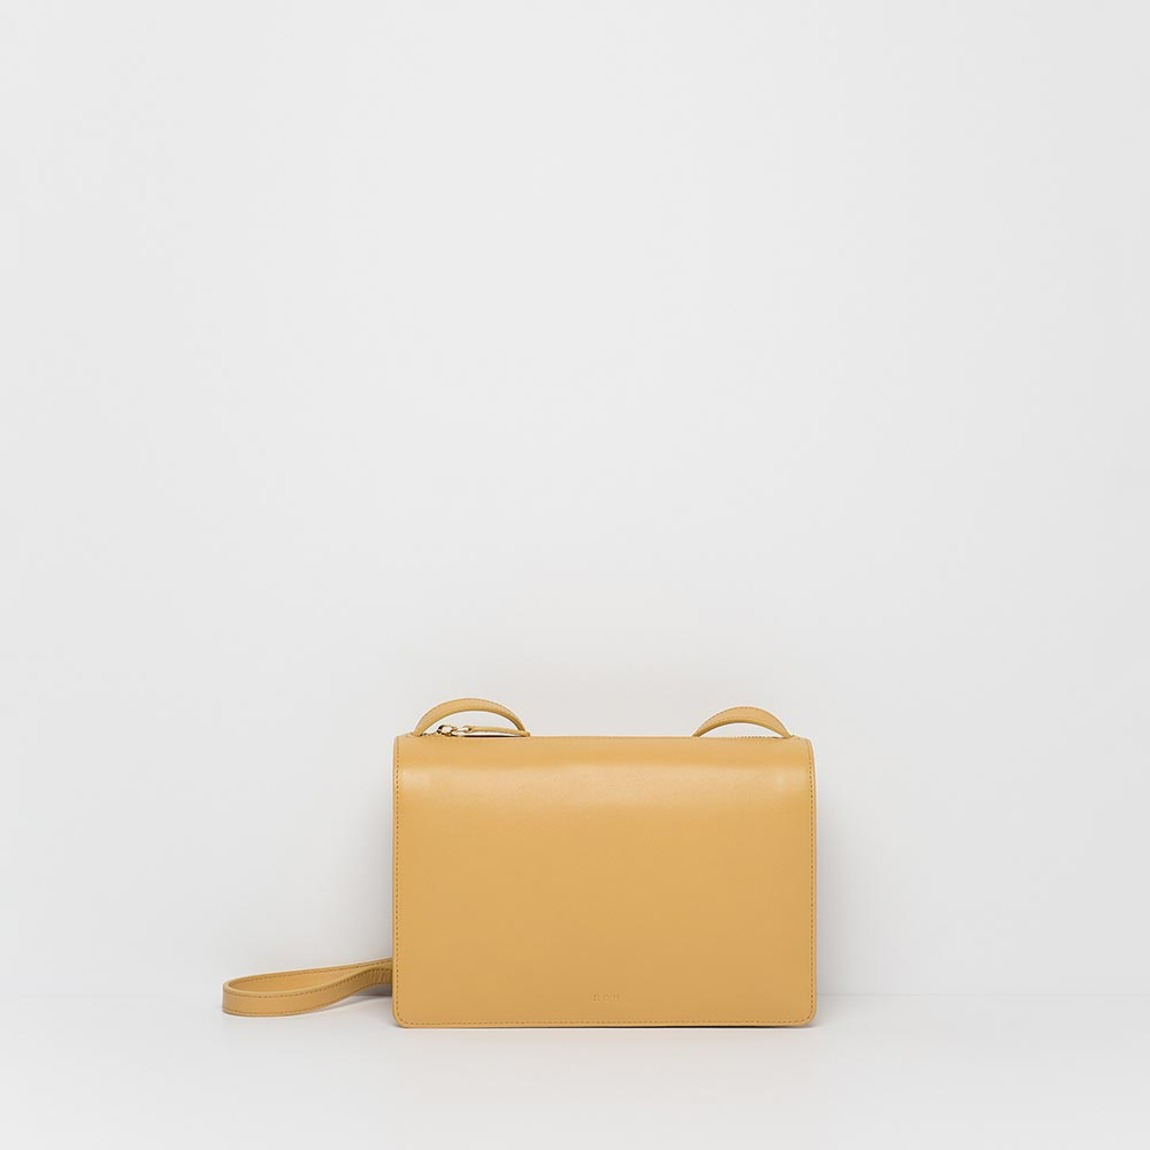 Round Square Bag Yellow